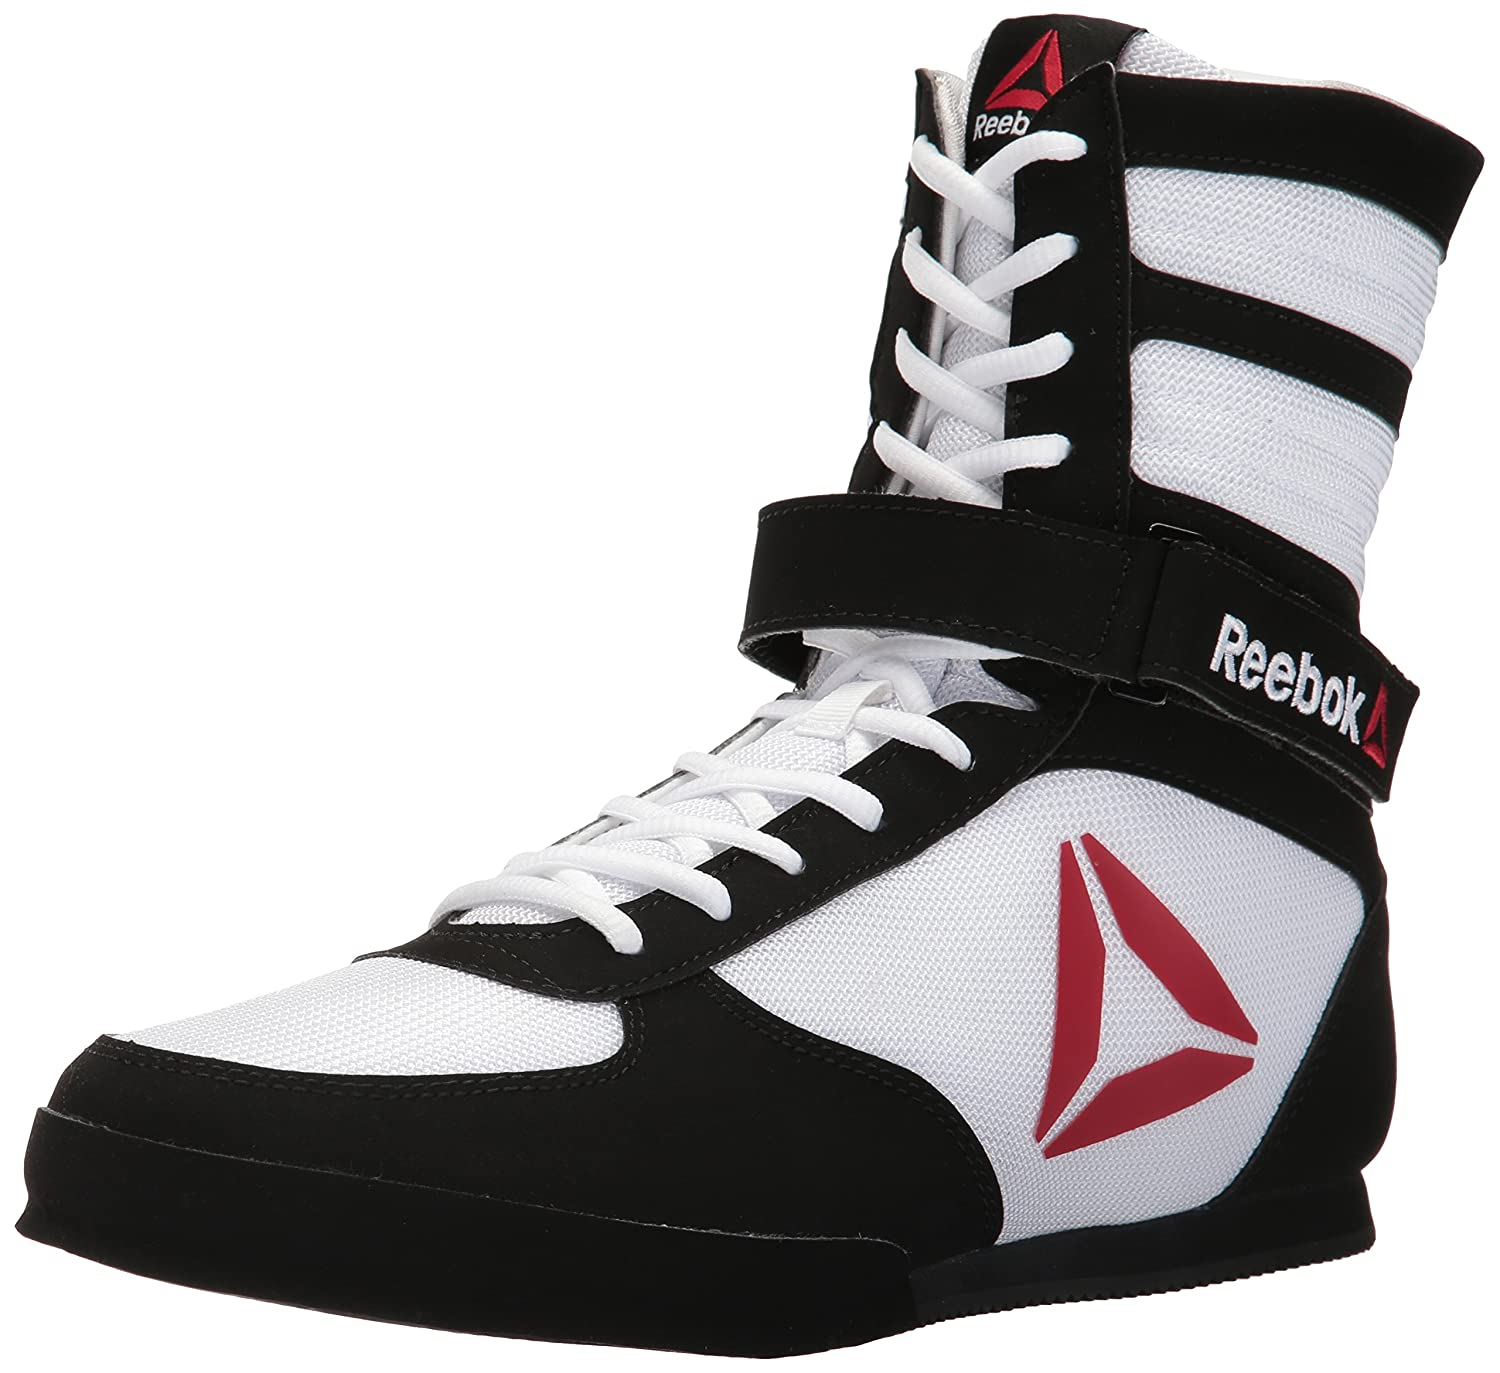 e5369b995b87 Reebok Men s Boxing Boot-Buck Sneaker Black White  Amazon.ca  Shoes    Handbags